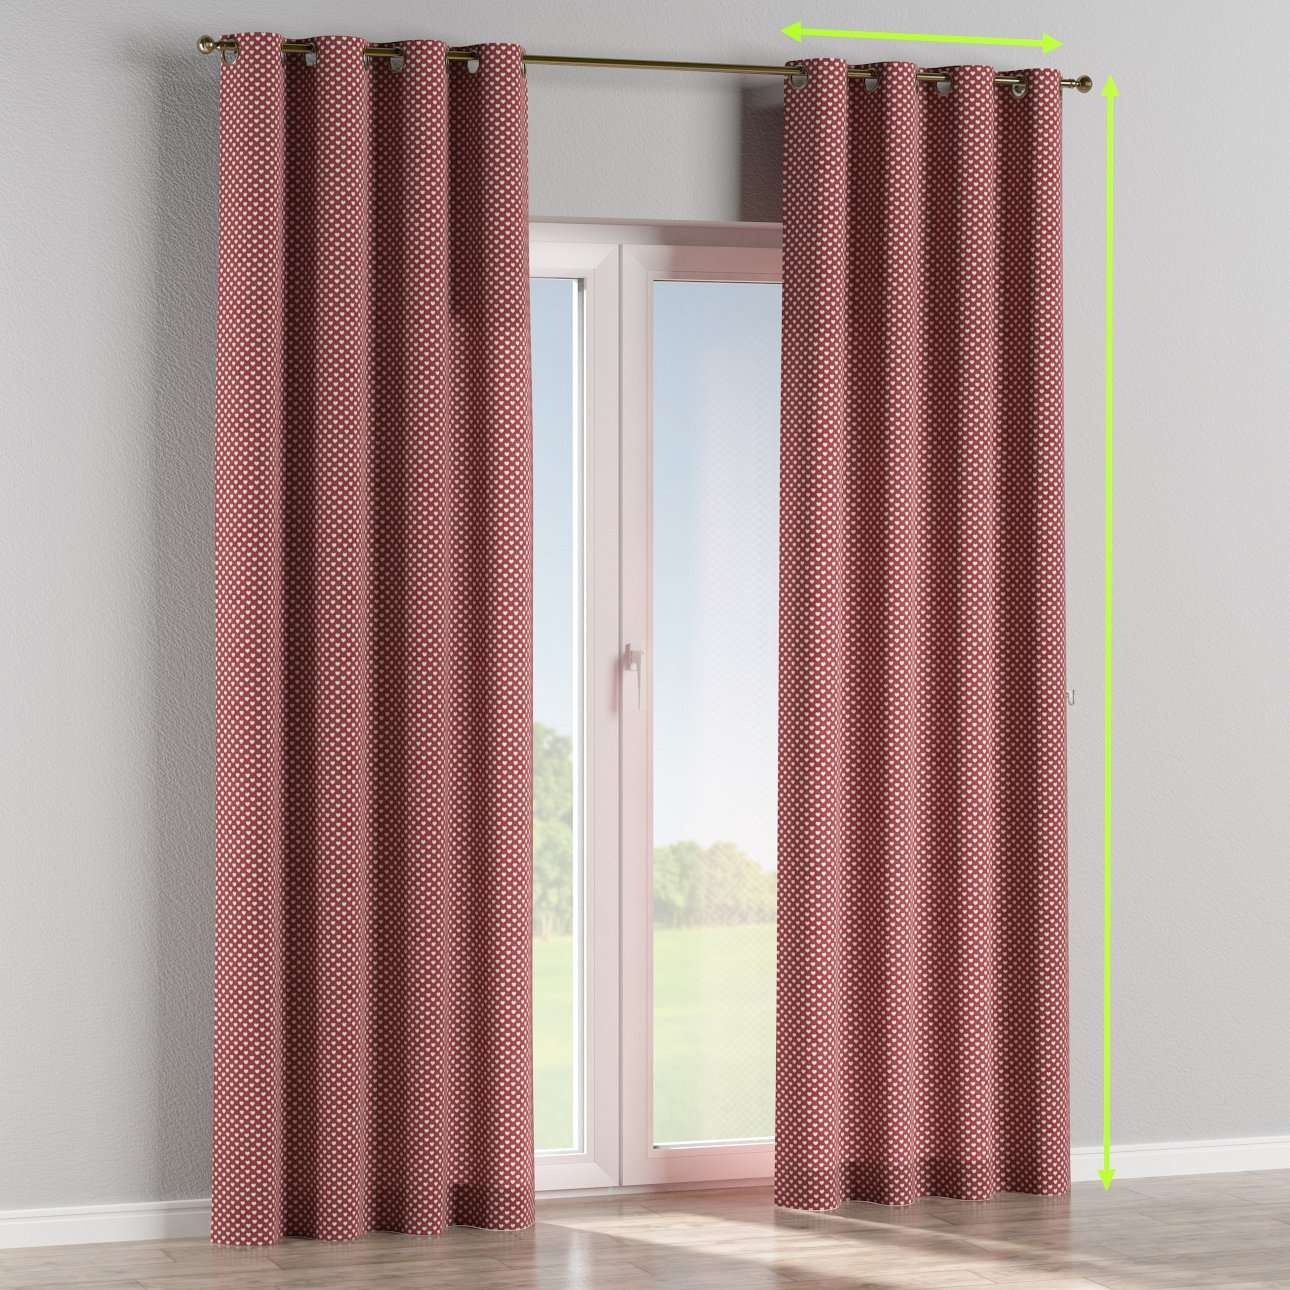 Eyelet curtains in collection Nordic, fabric: 630-40